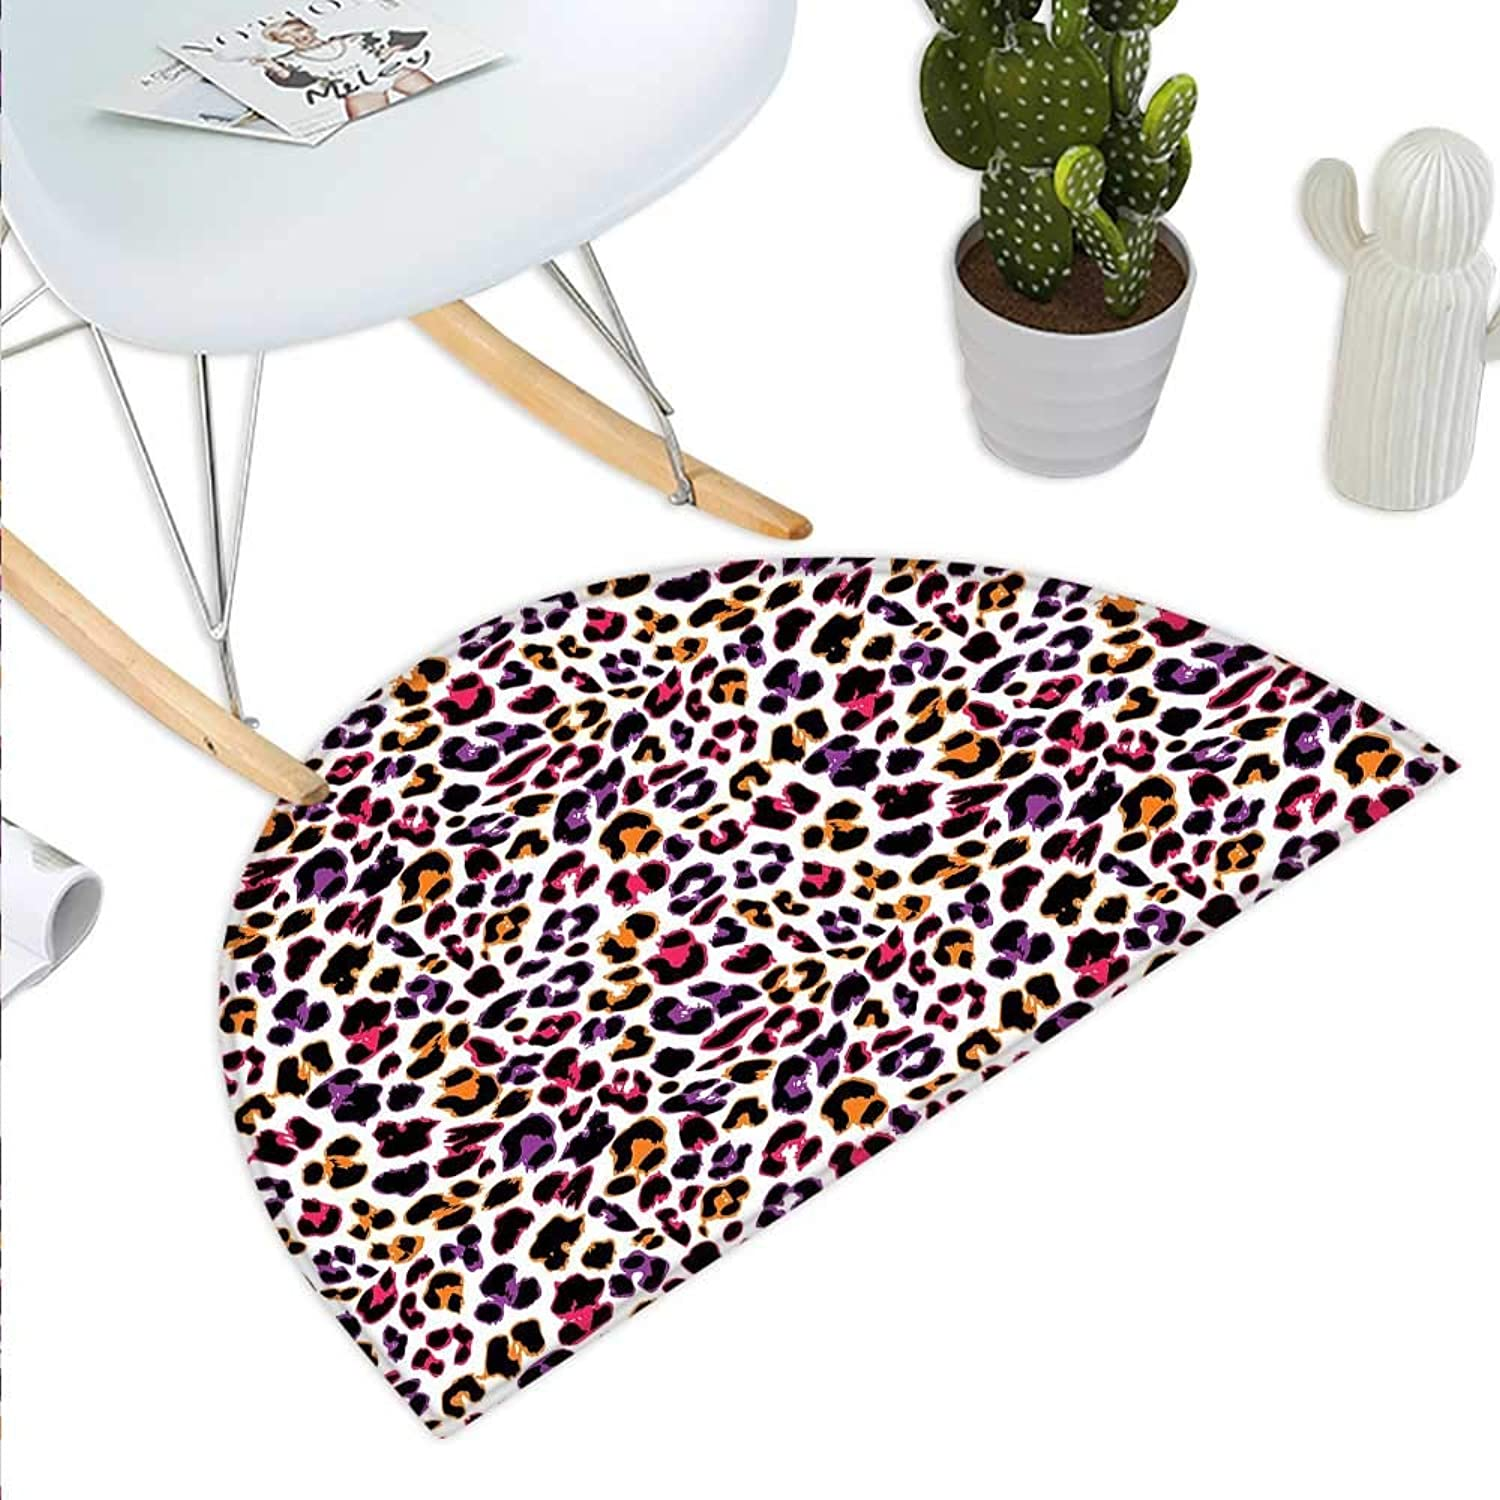 African Semicircle Doormat Leopard Skin Motif with Abstract Safari Animal Camouflage Pattern Halfmoon doormats H 39.3  xD 59  Magenta purple Marigold